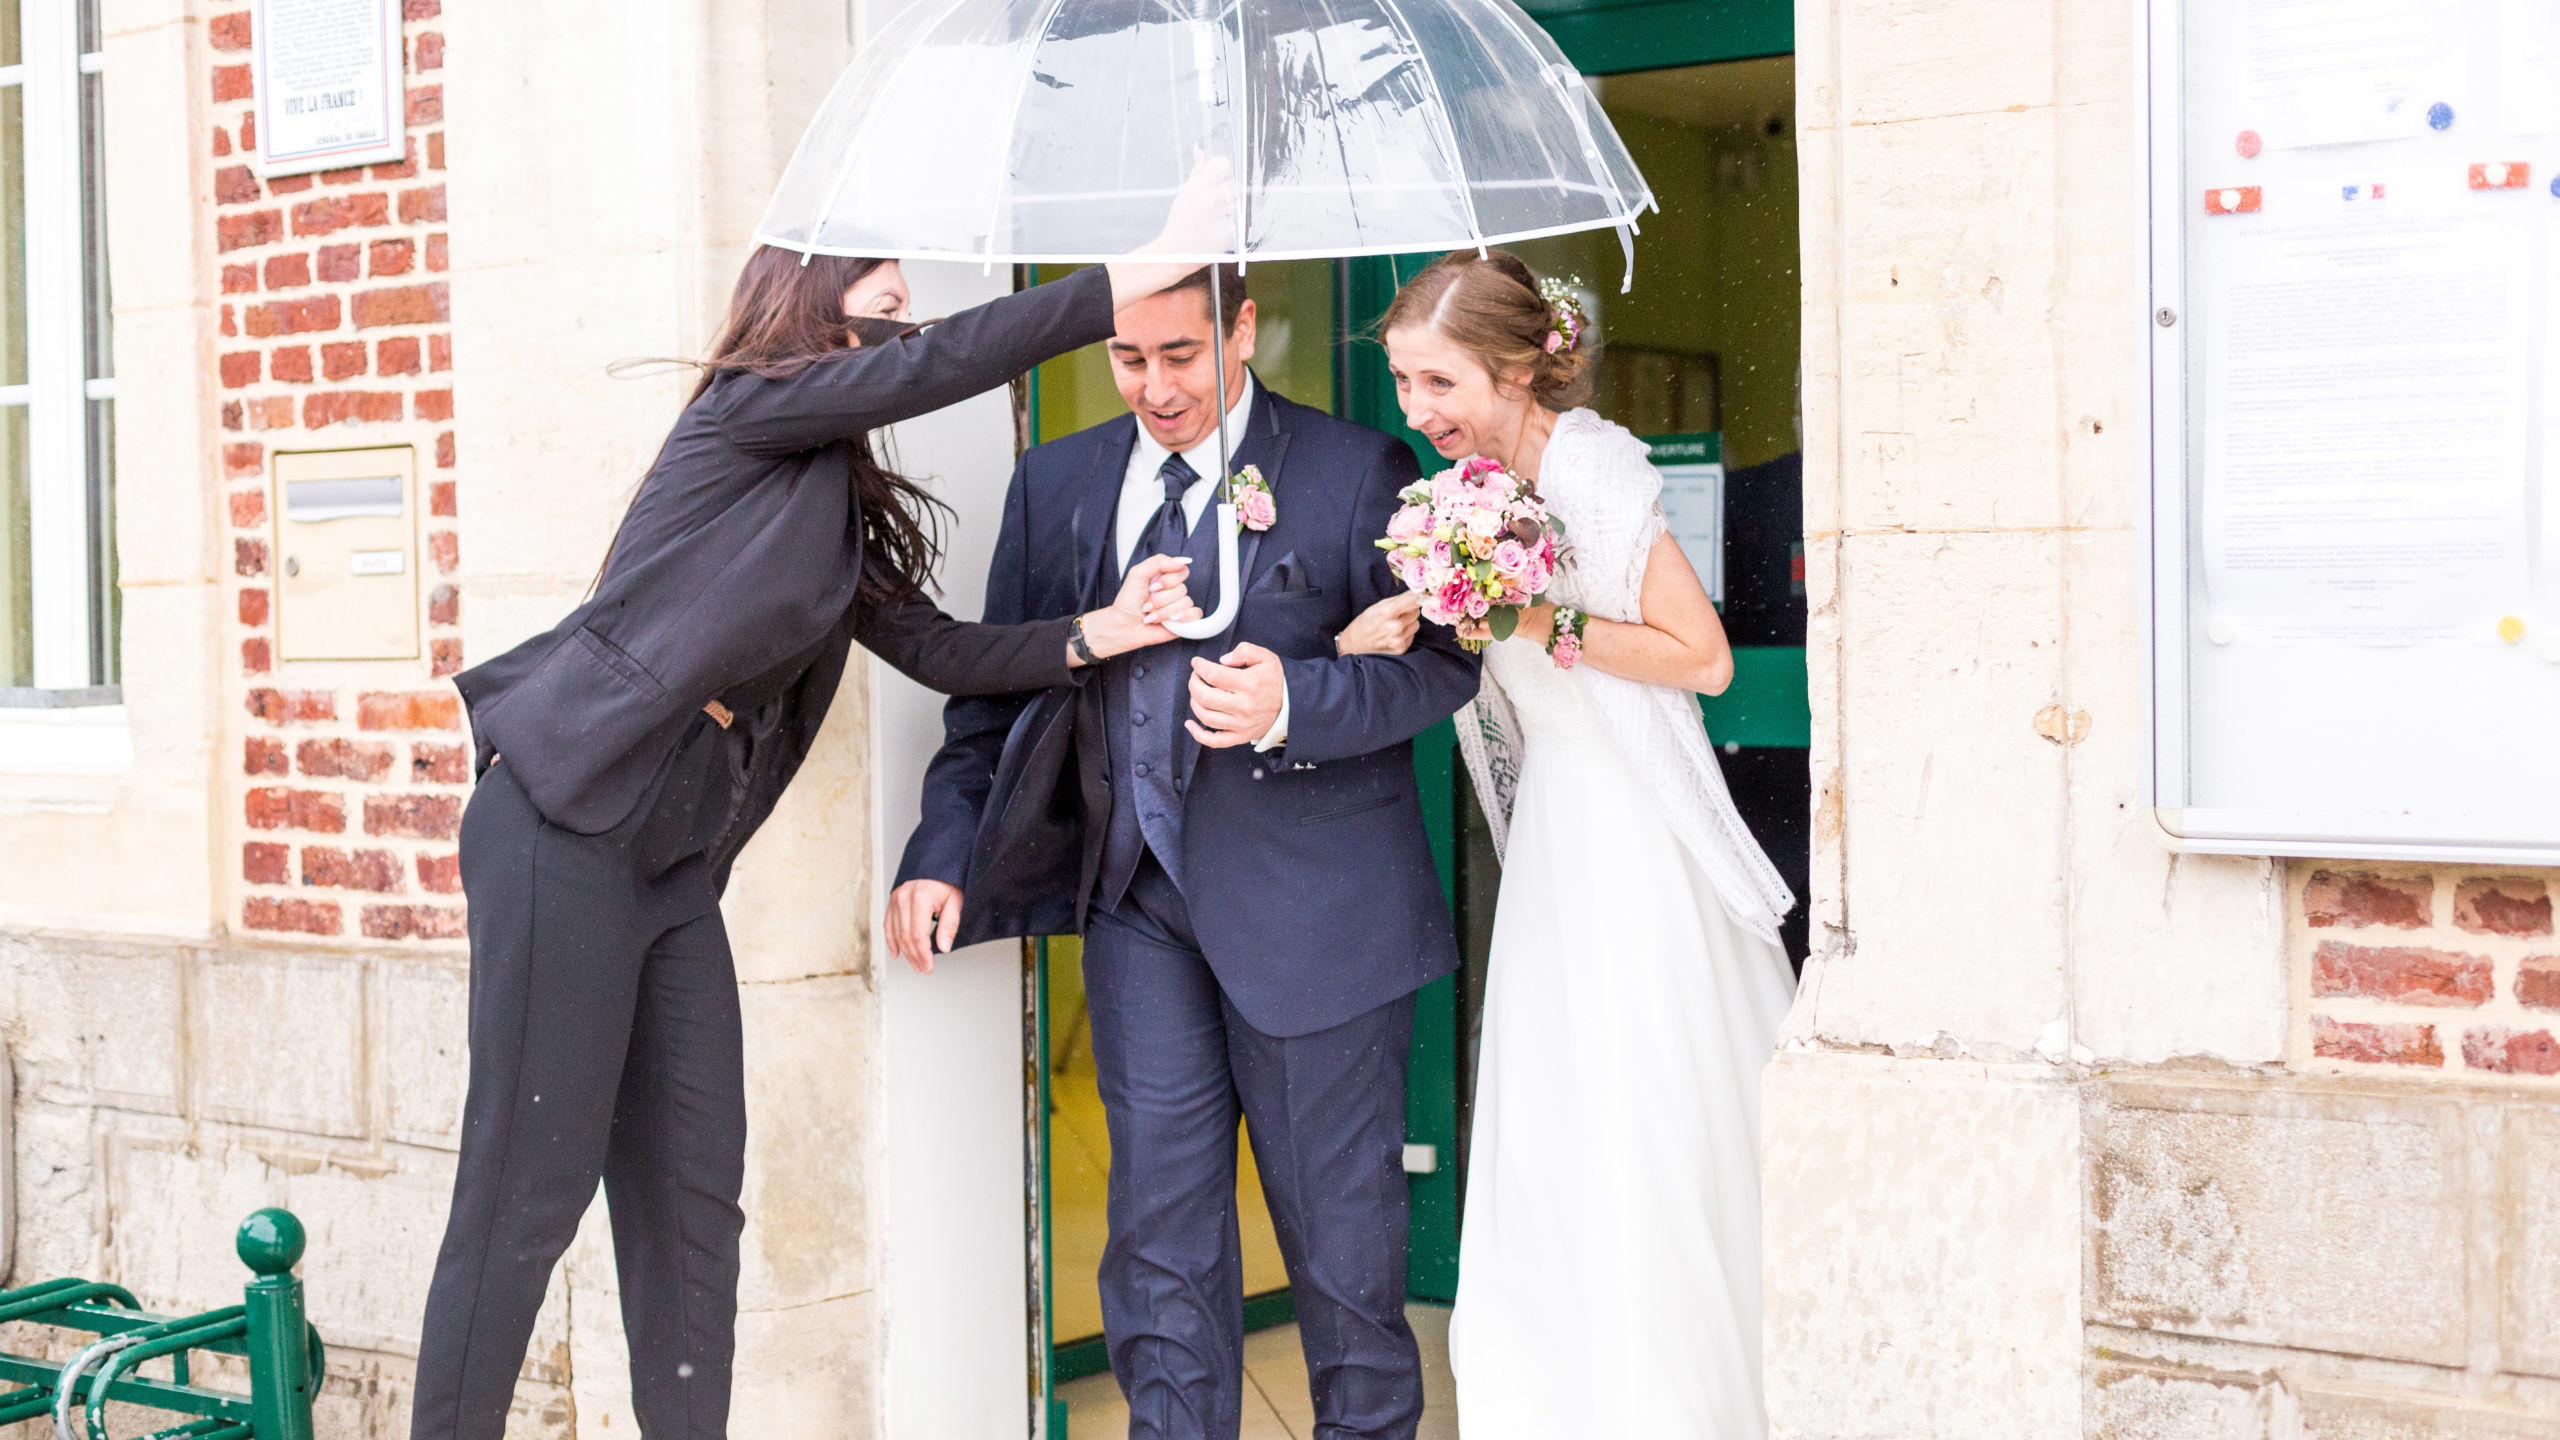 Mariage pluvieux - Perfect Moment by A - Reims